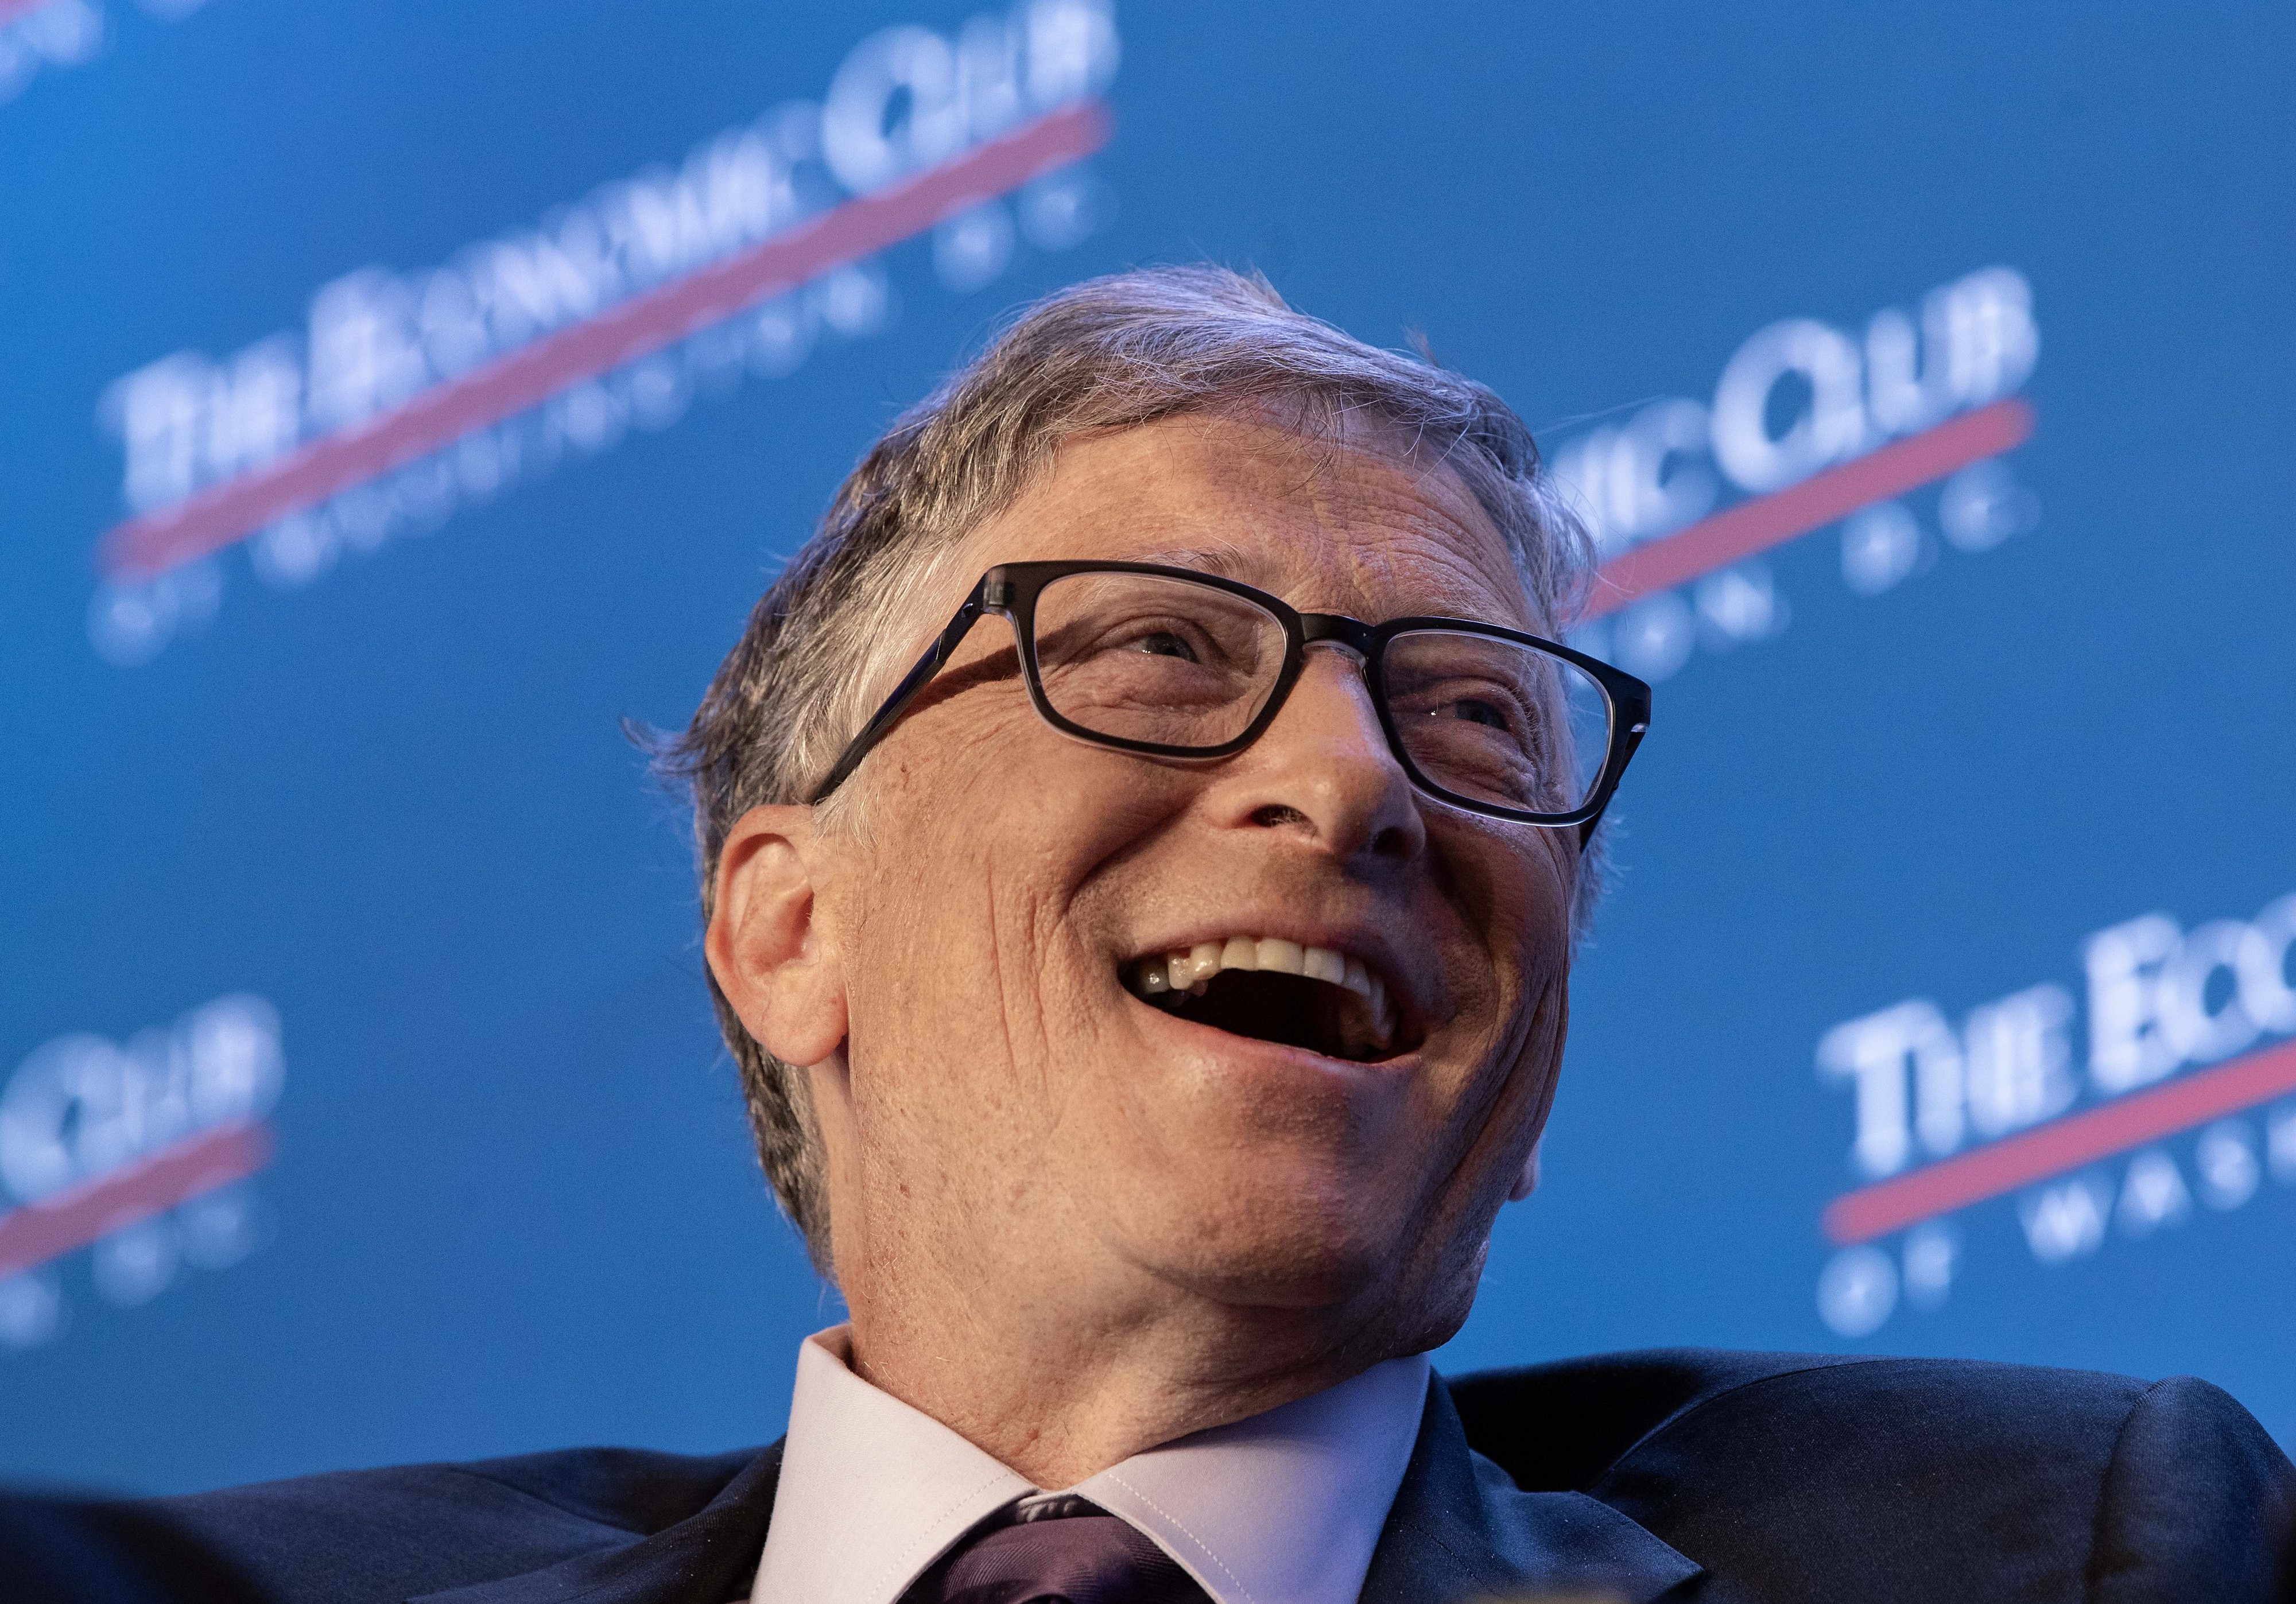 The Most Important Lesson We Can Learn From Bill Gates